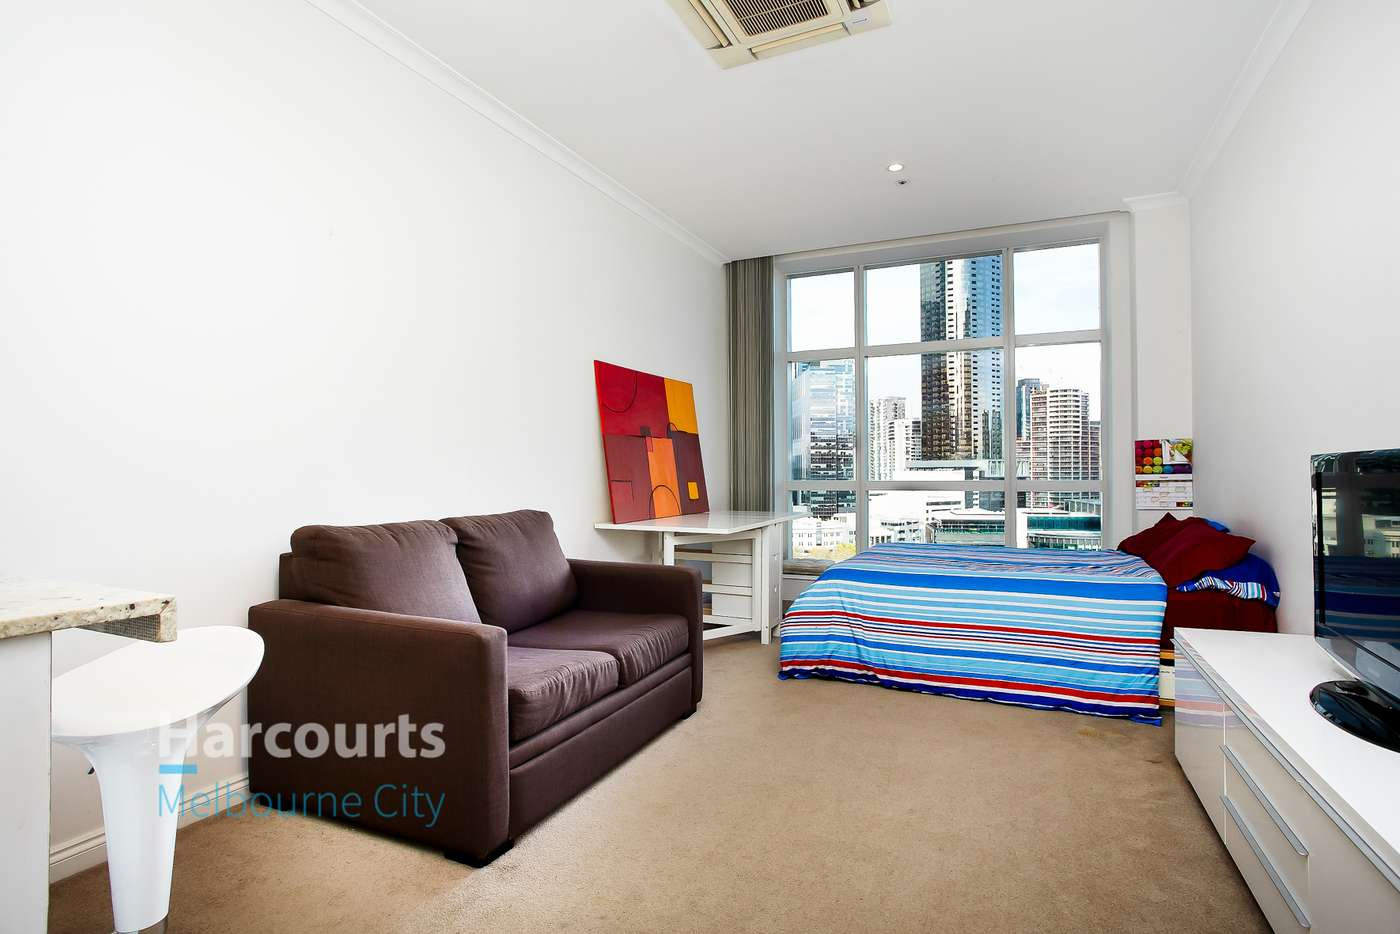 Main view of Homely studio listing, 1105B/1 William Street, Melbourne VIC 3000